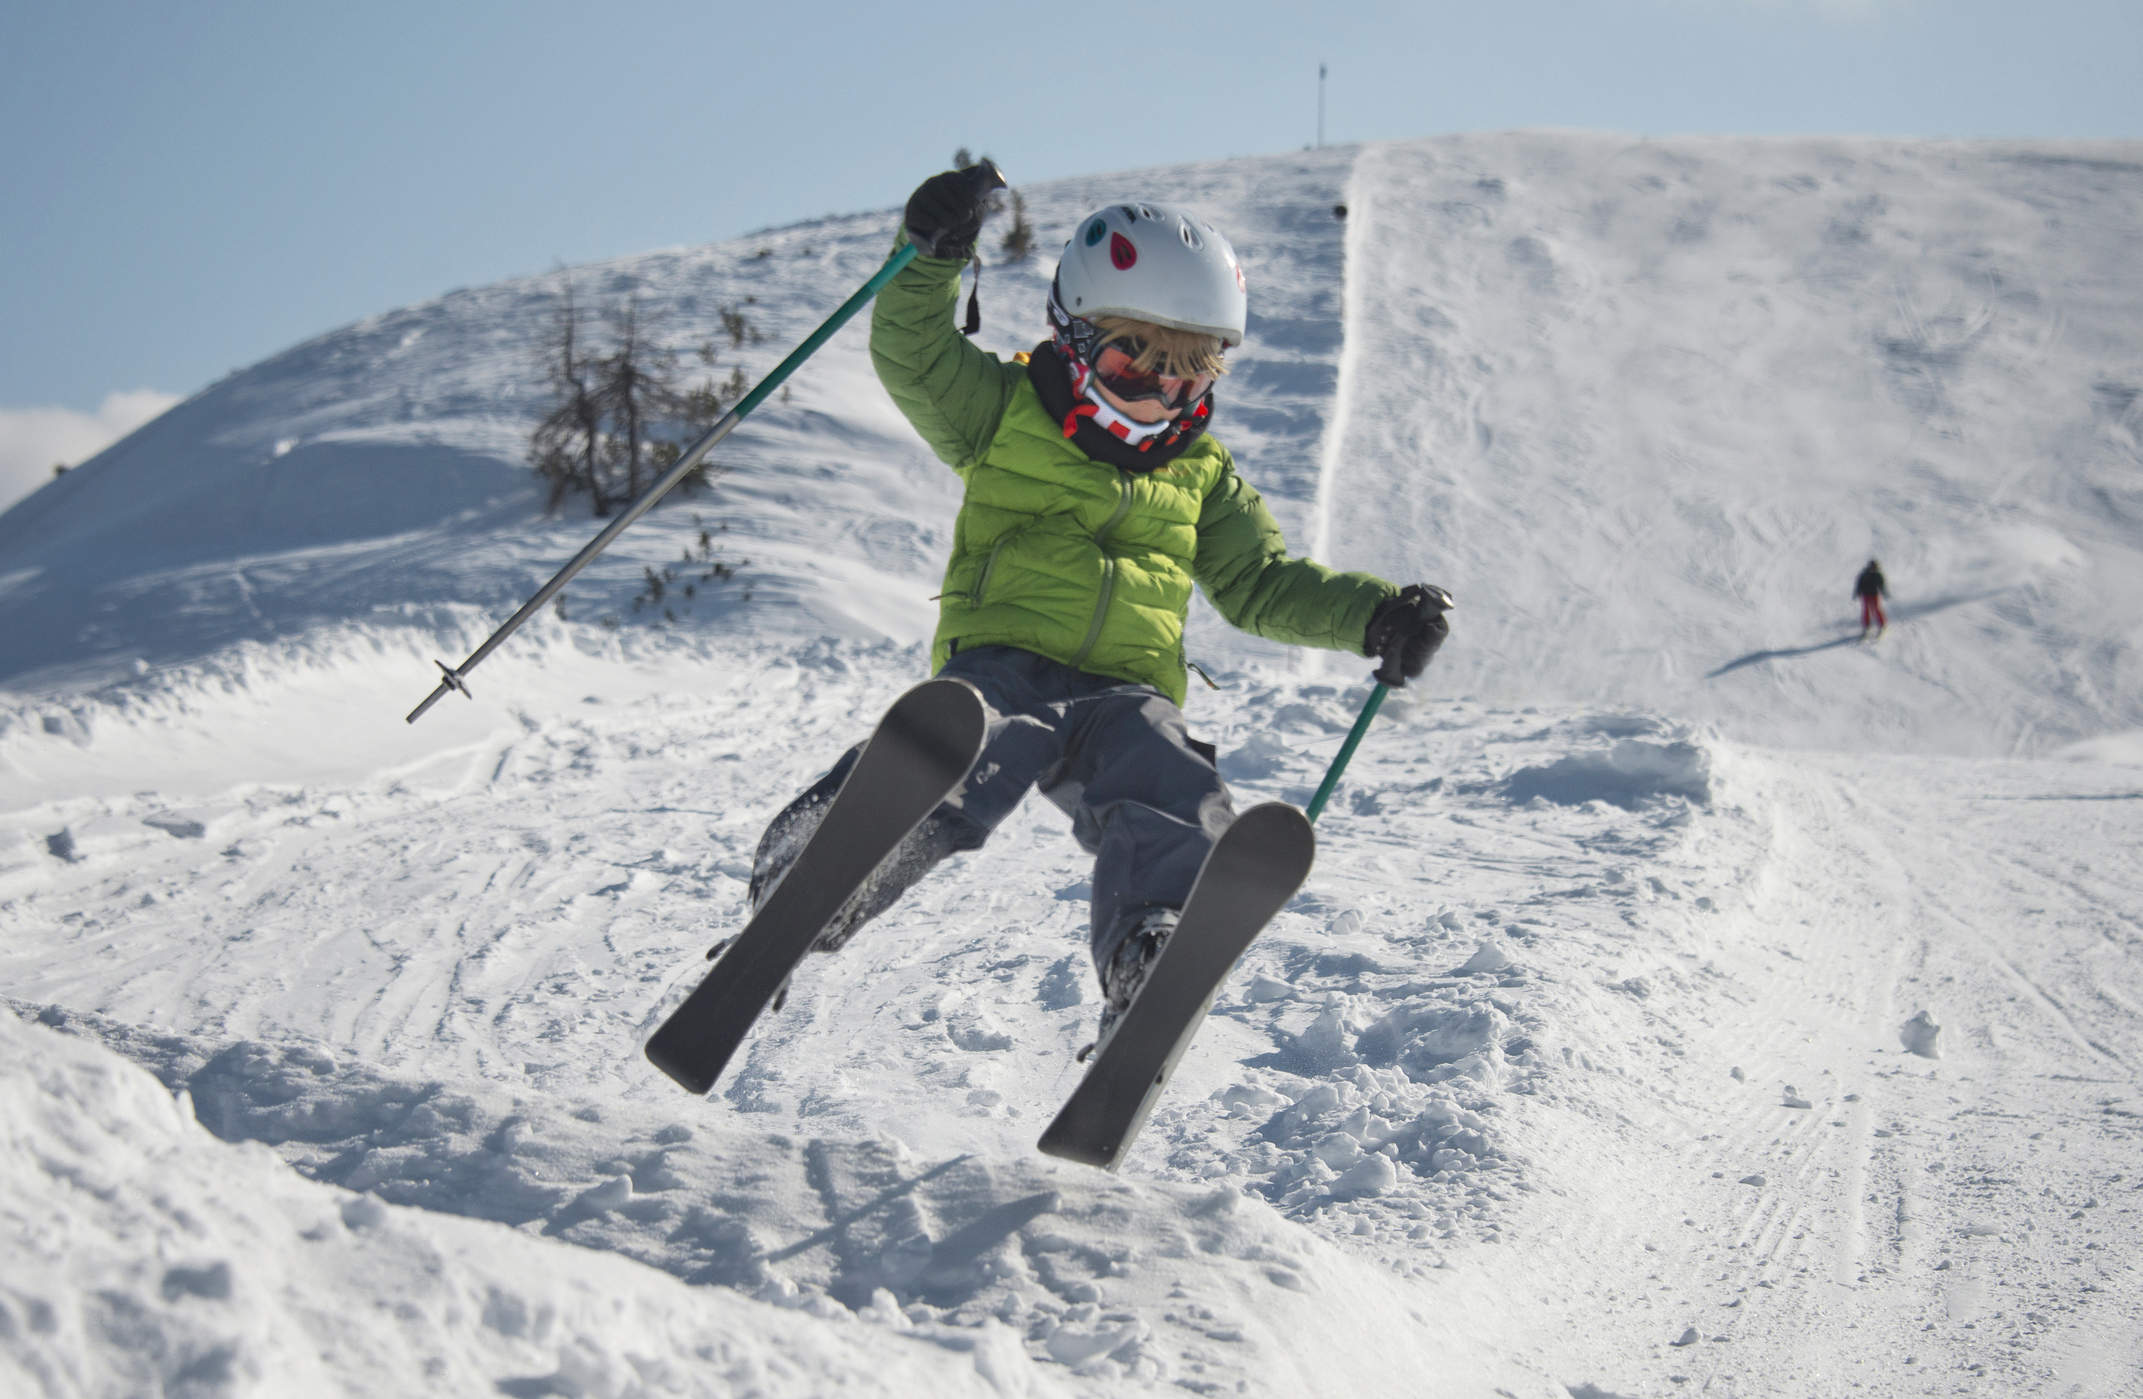 Cours particuliers ski à partir de 6 ans/ Private ski lessons from 6 years old